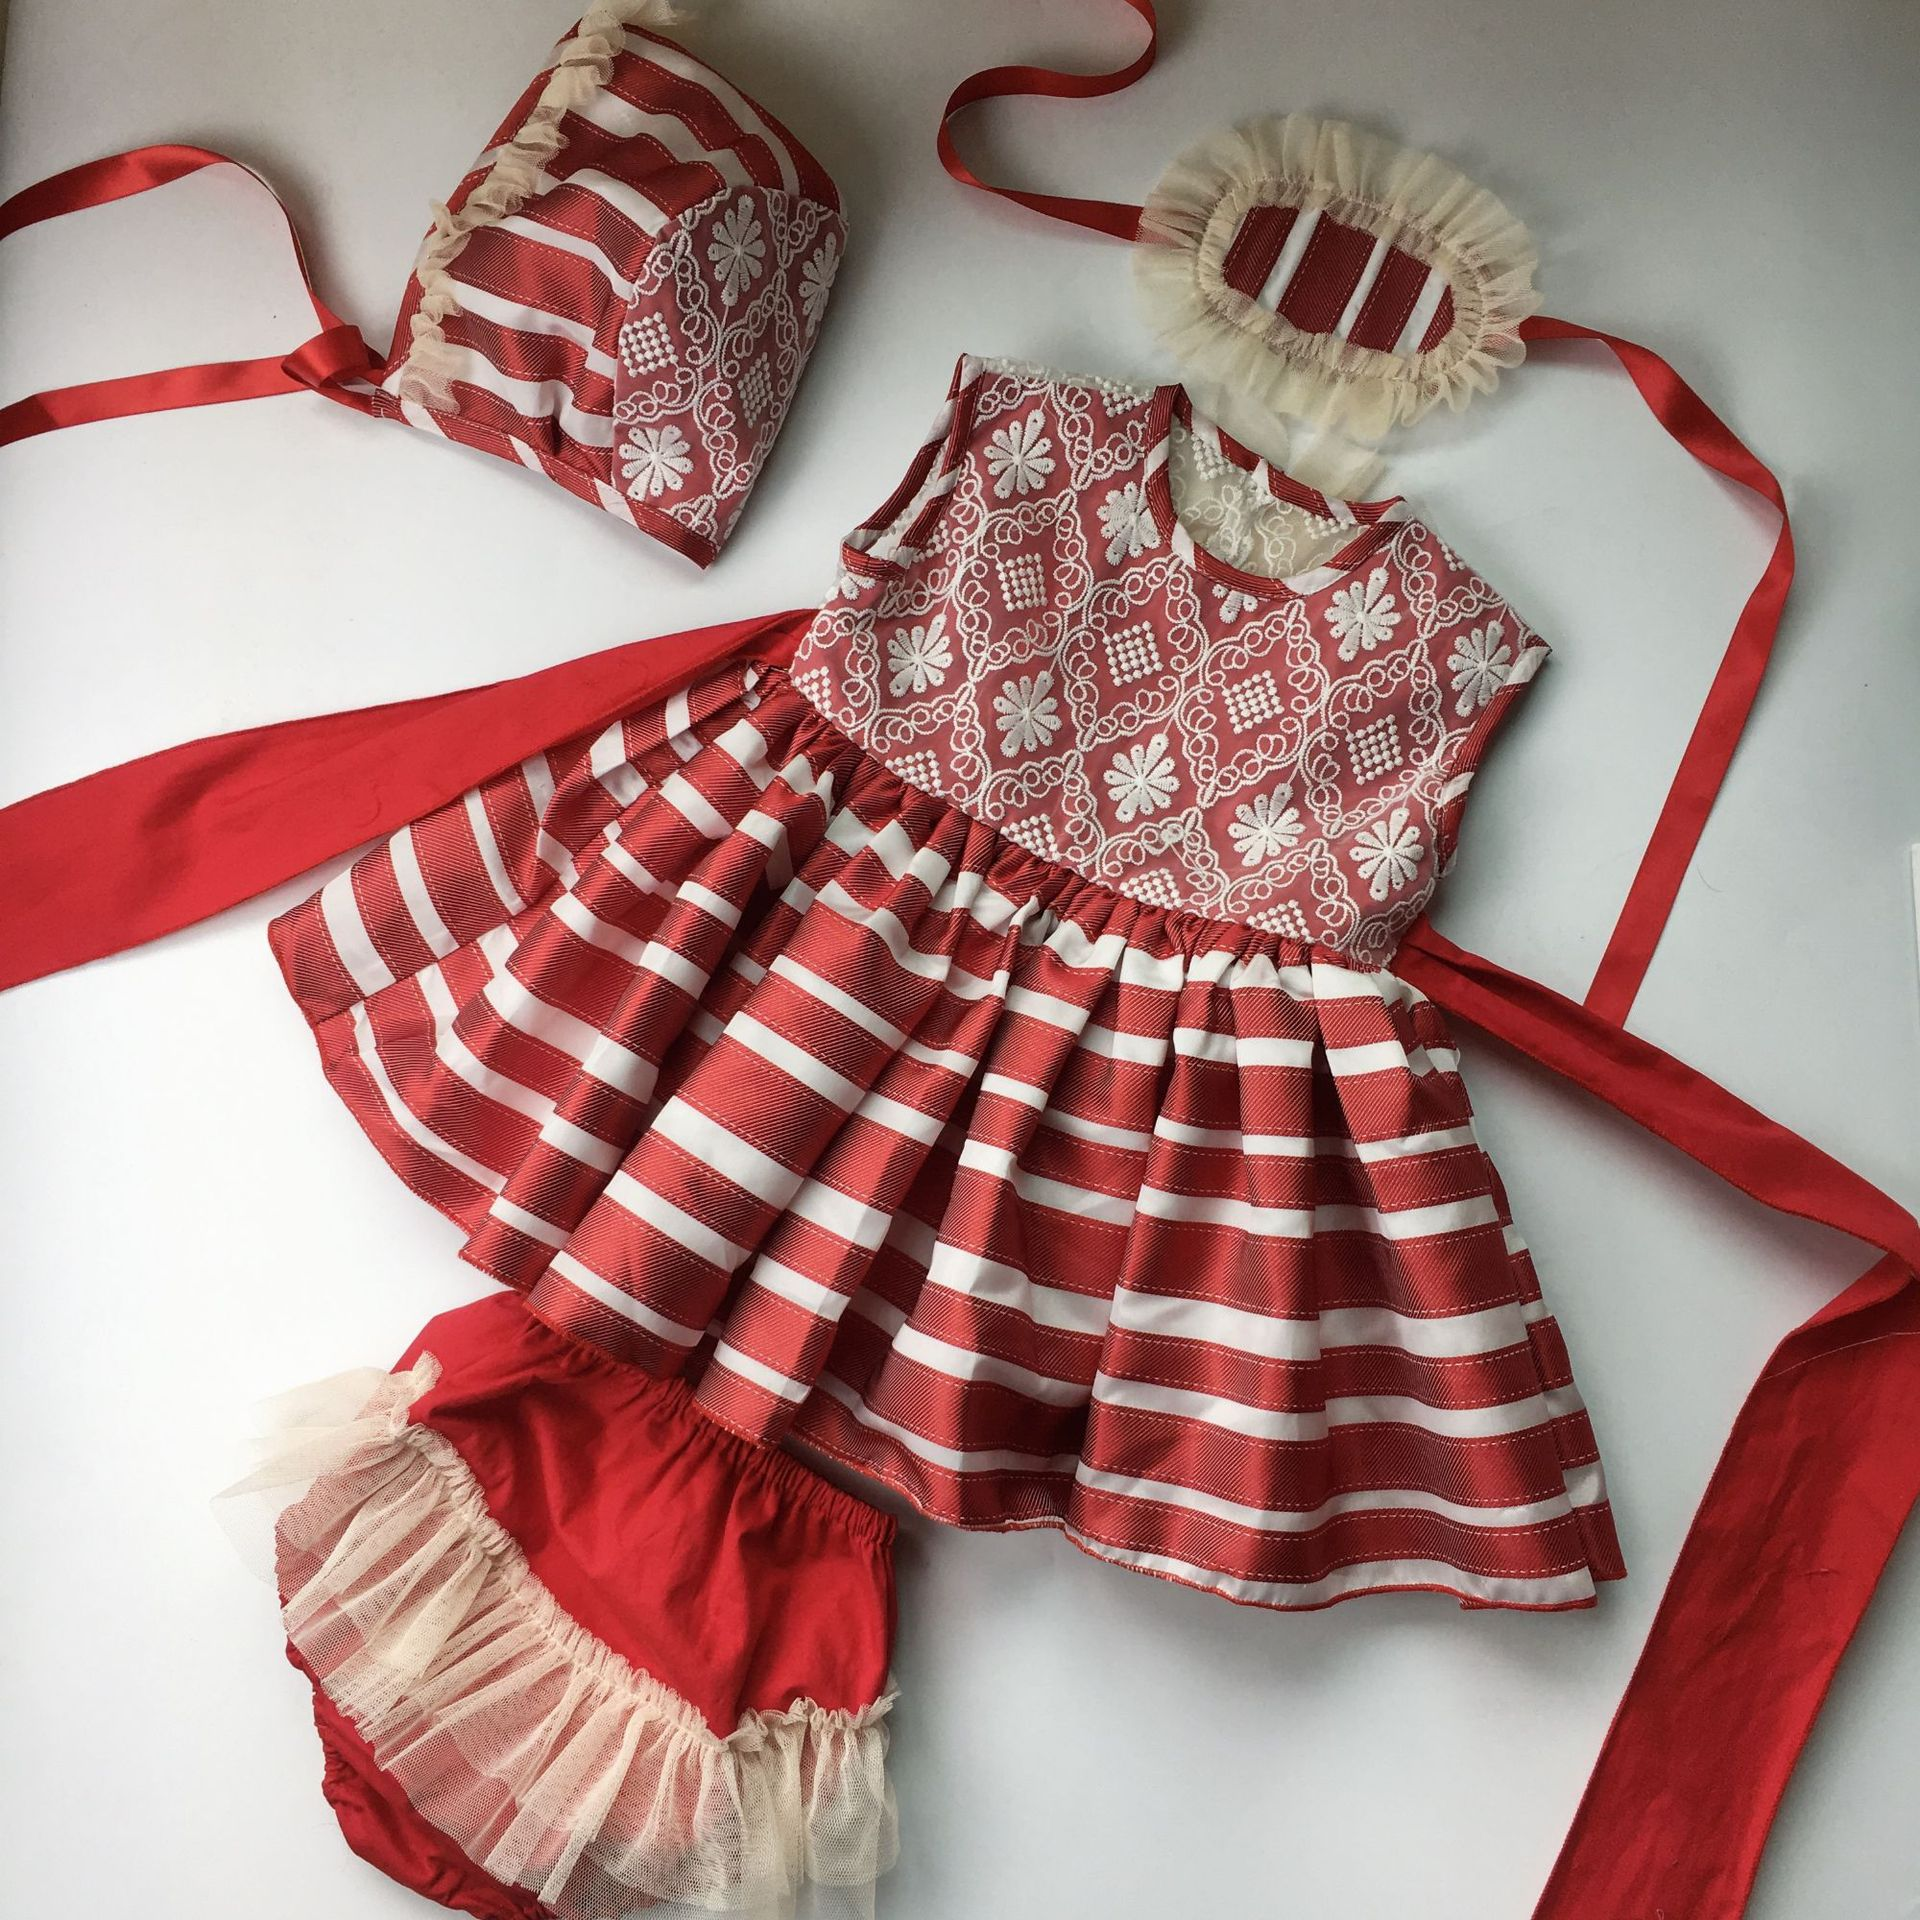 4PCS set baby girl embroidered red dresses kids striped backless princess lace ball gowns dress for party birthday wedding cloth4PCS set baby girl embroidered red dresses kids striped backless princess lace ball gowns dress for party birthday wedding cloth